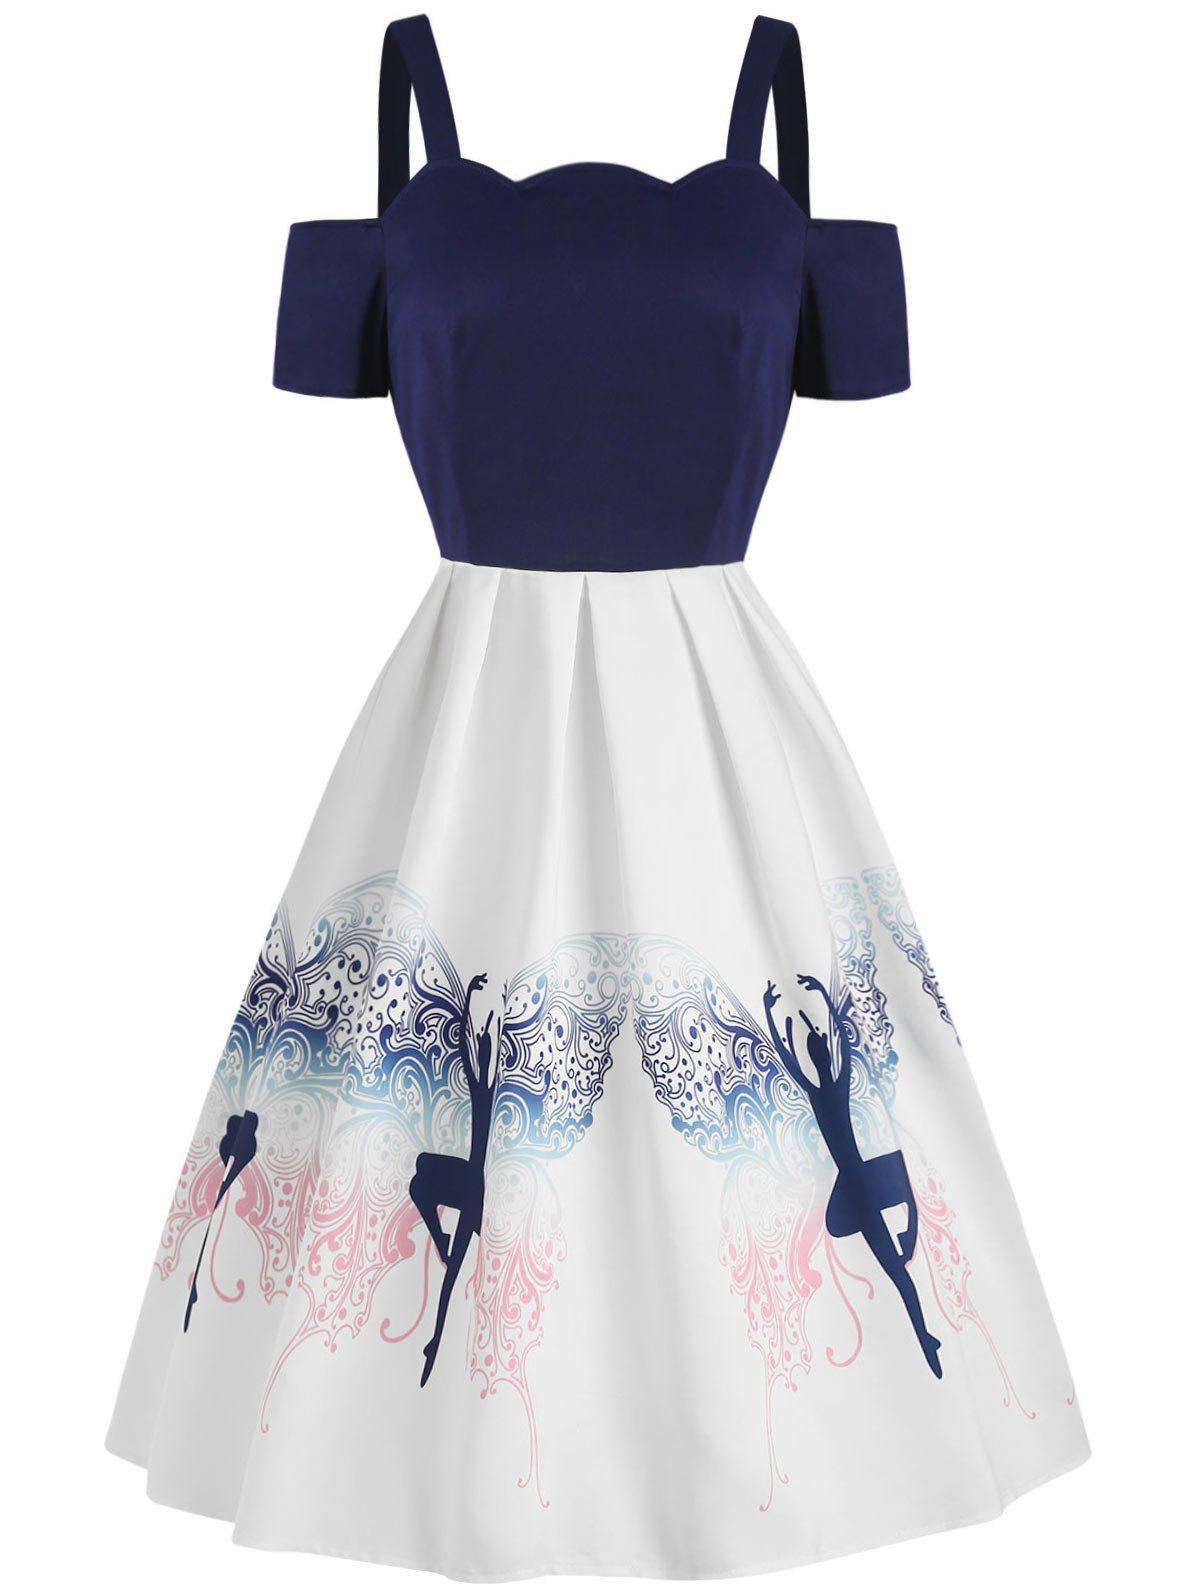 Chic Dancing Girl Print Fit and Flare Dress